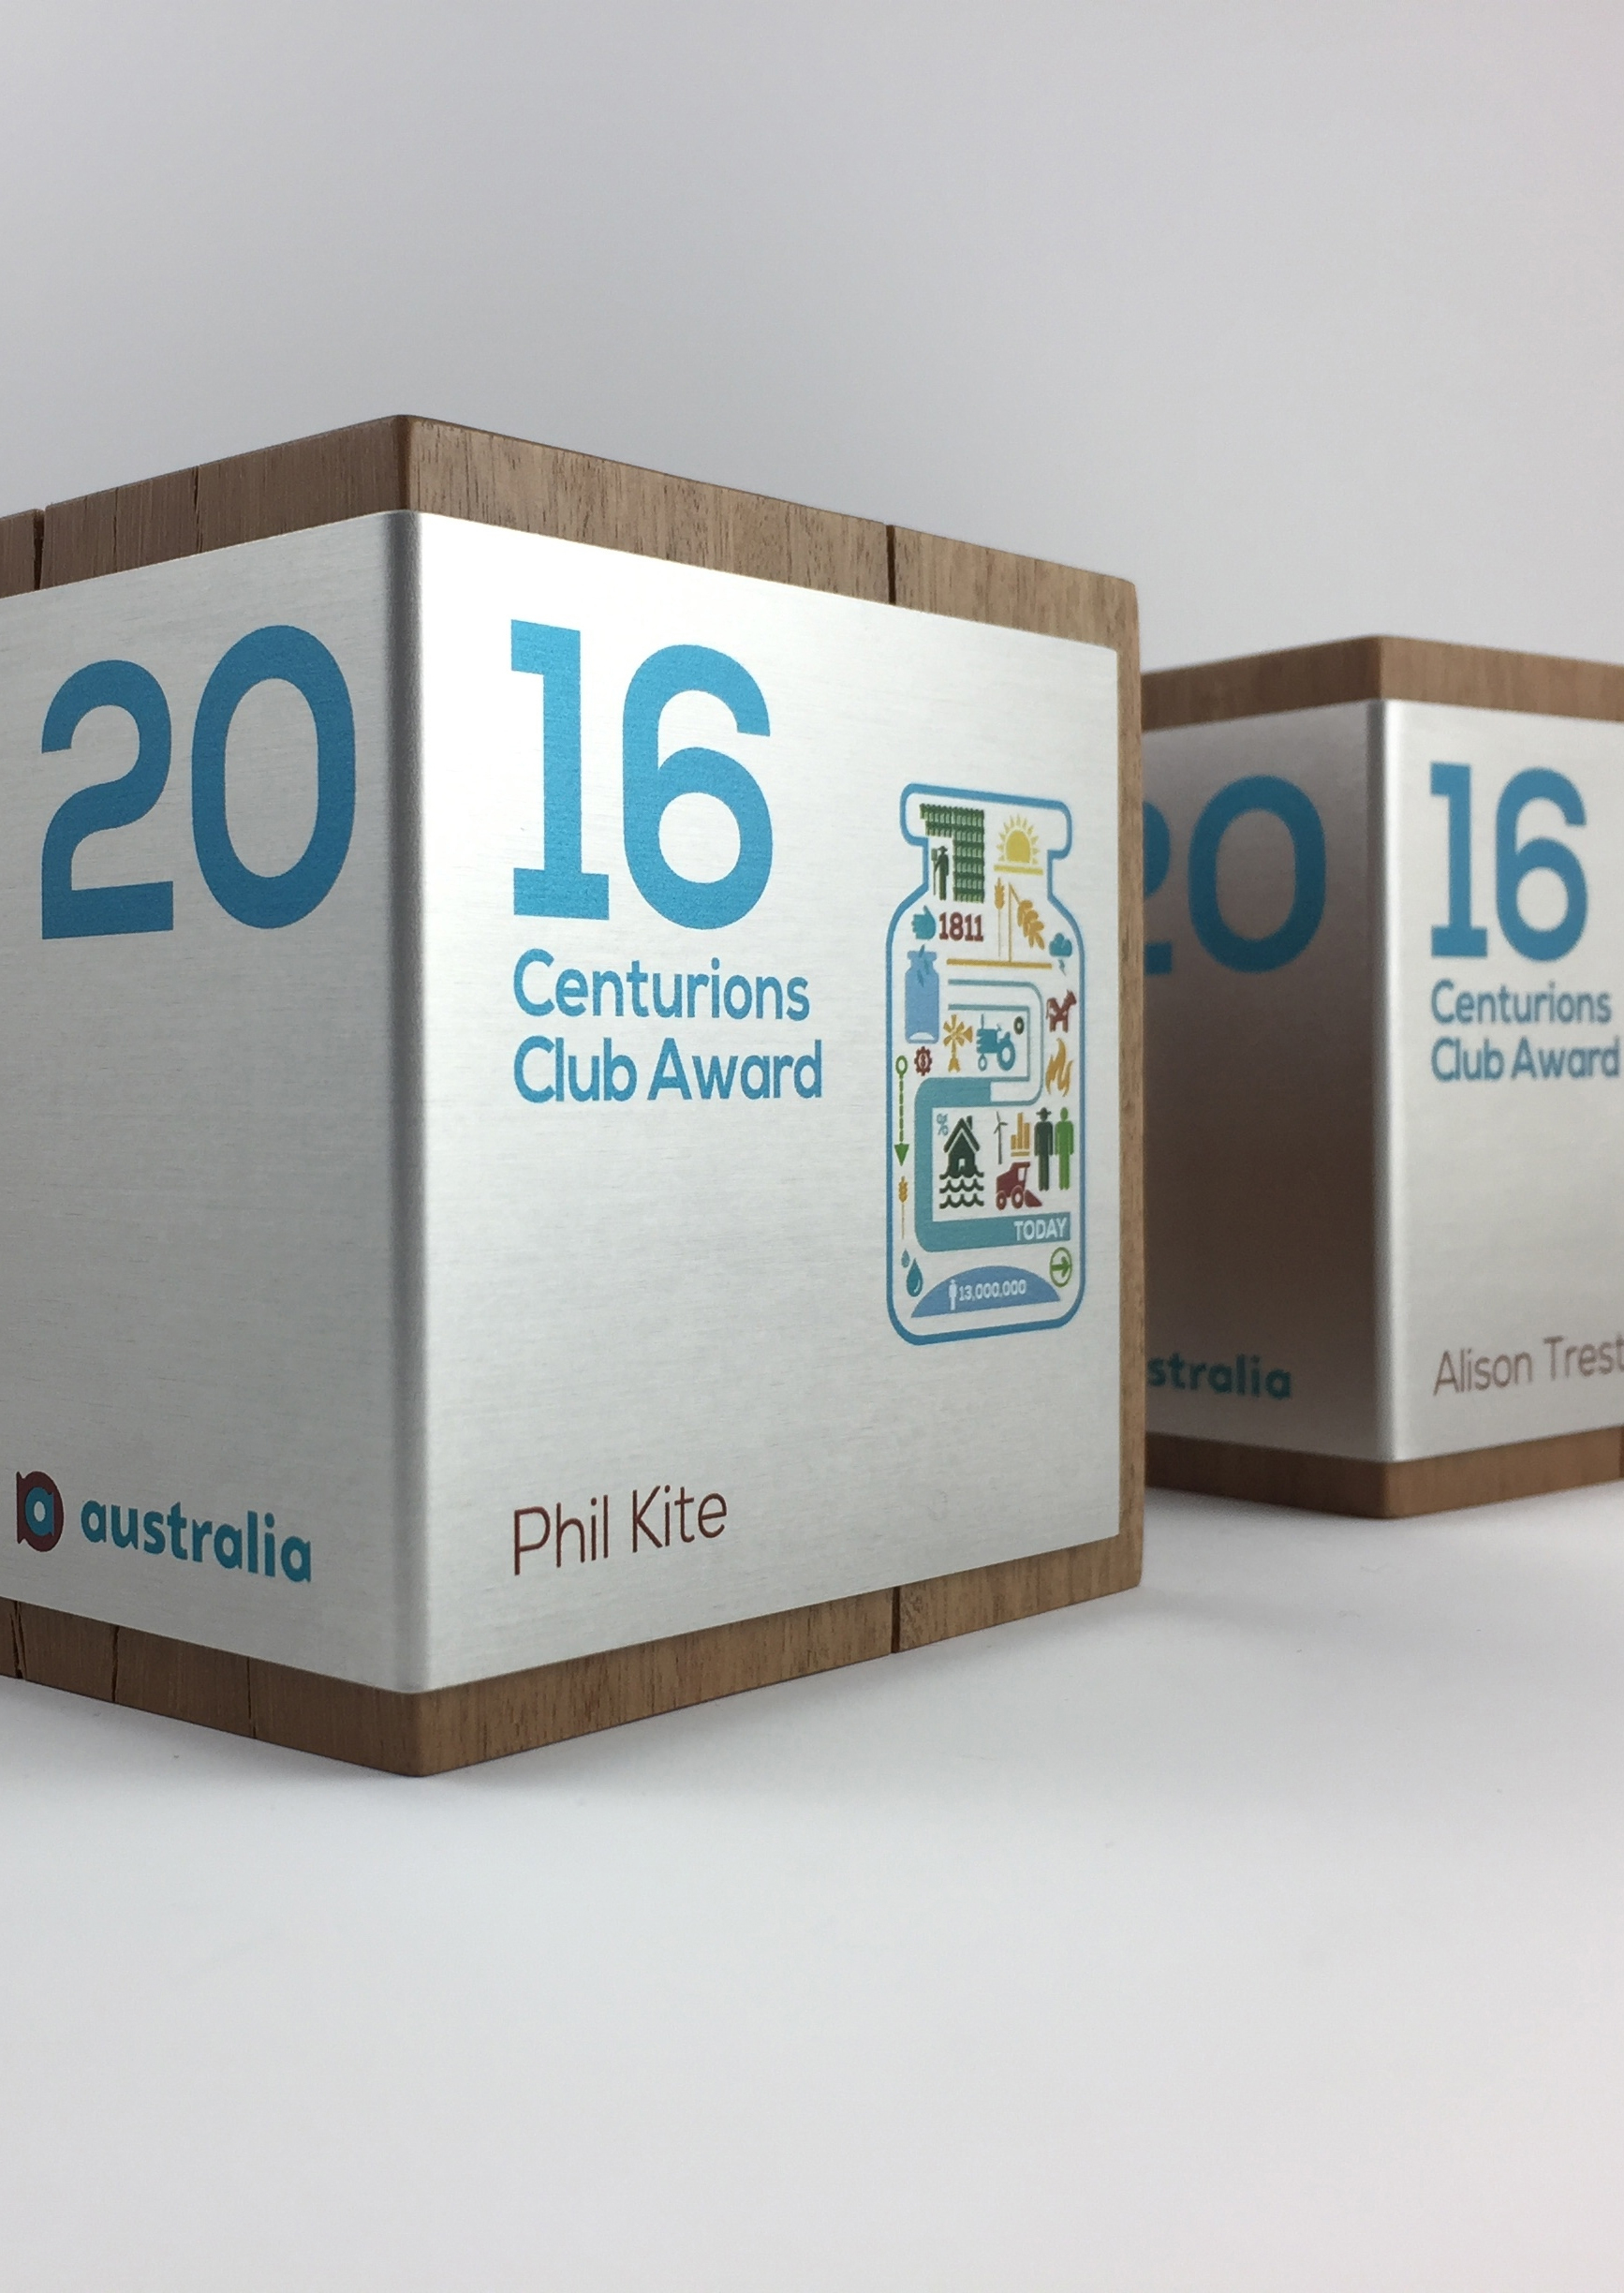 achmea-recycled-timber-cube-eco-metal-award-trophy-01.jpg